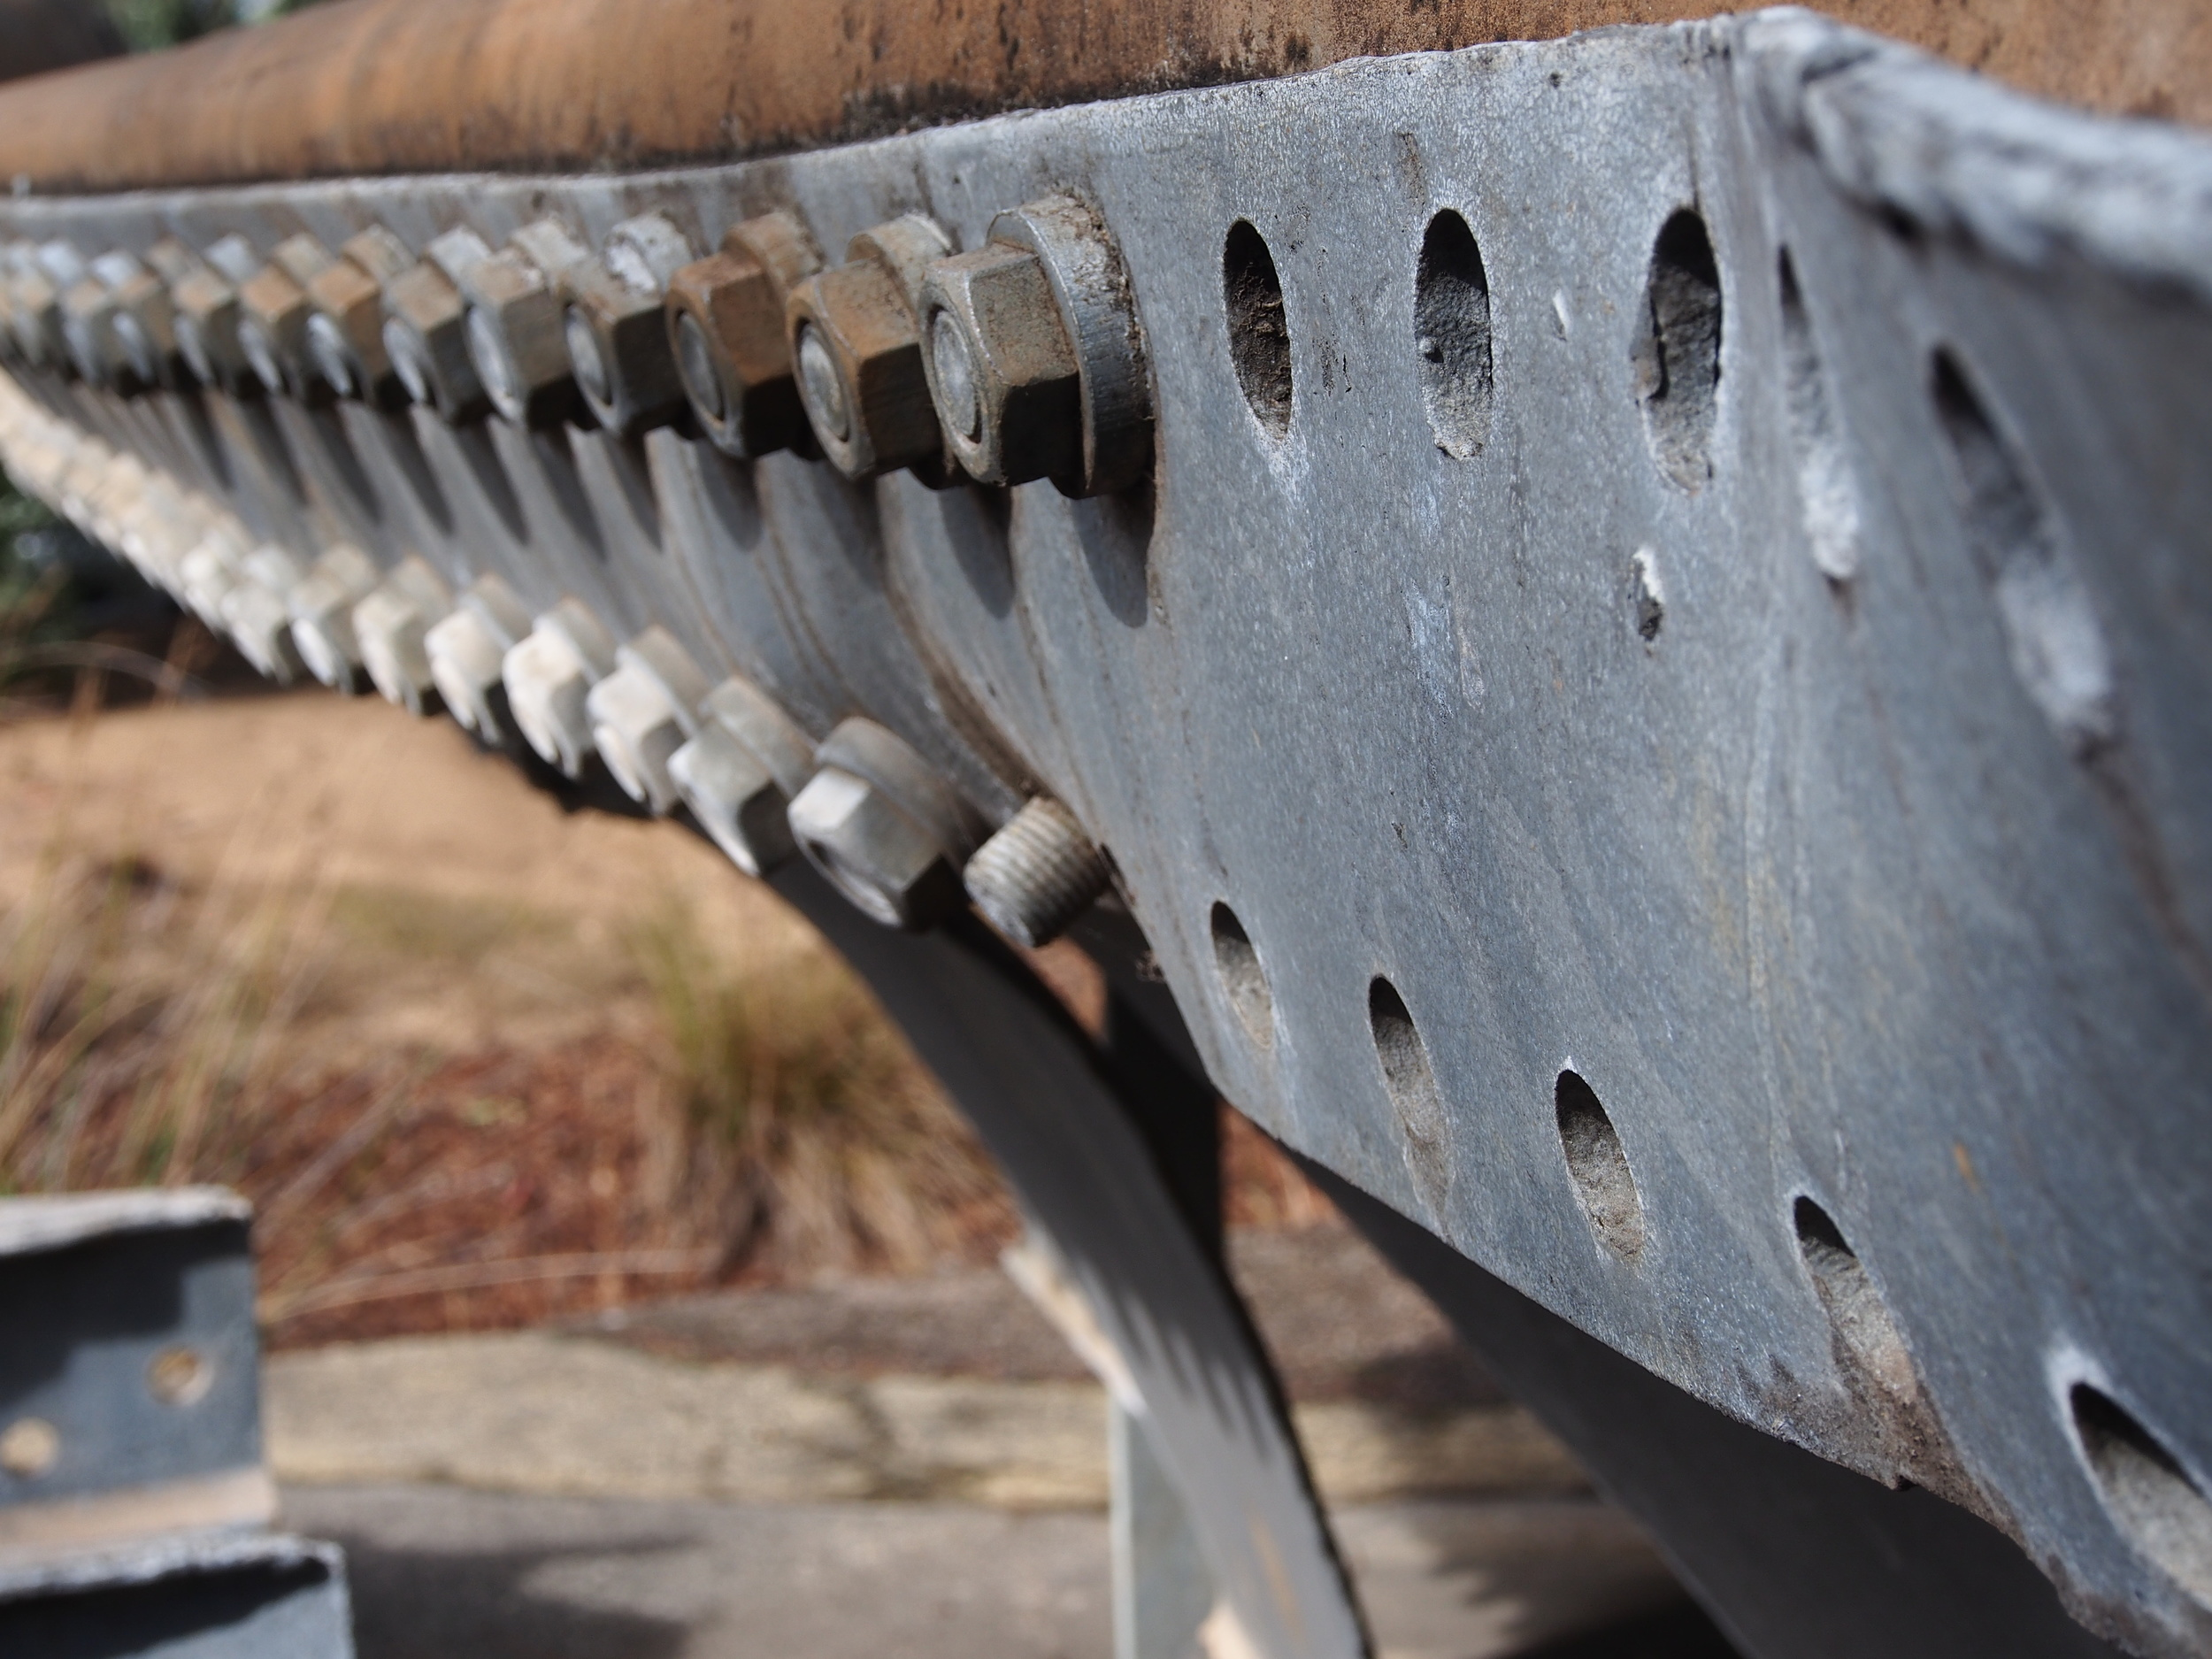 A section of the West Gate Bridge where bolt removal was taking place at the time of the collapse